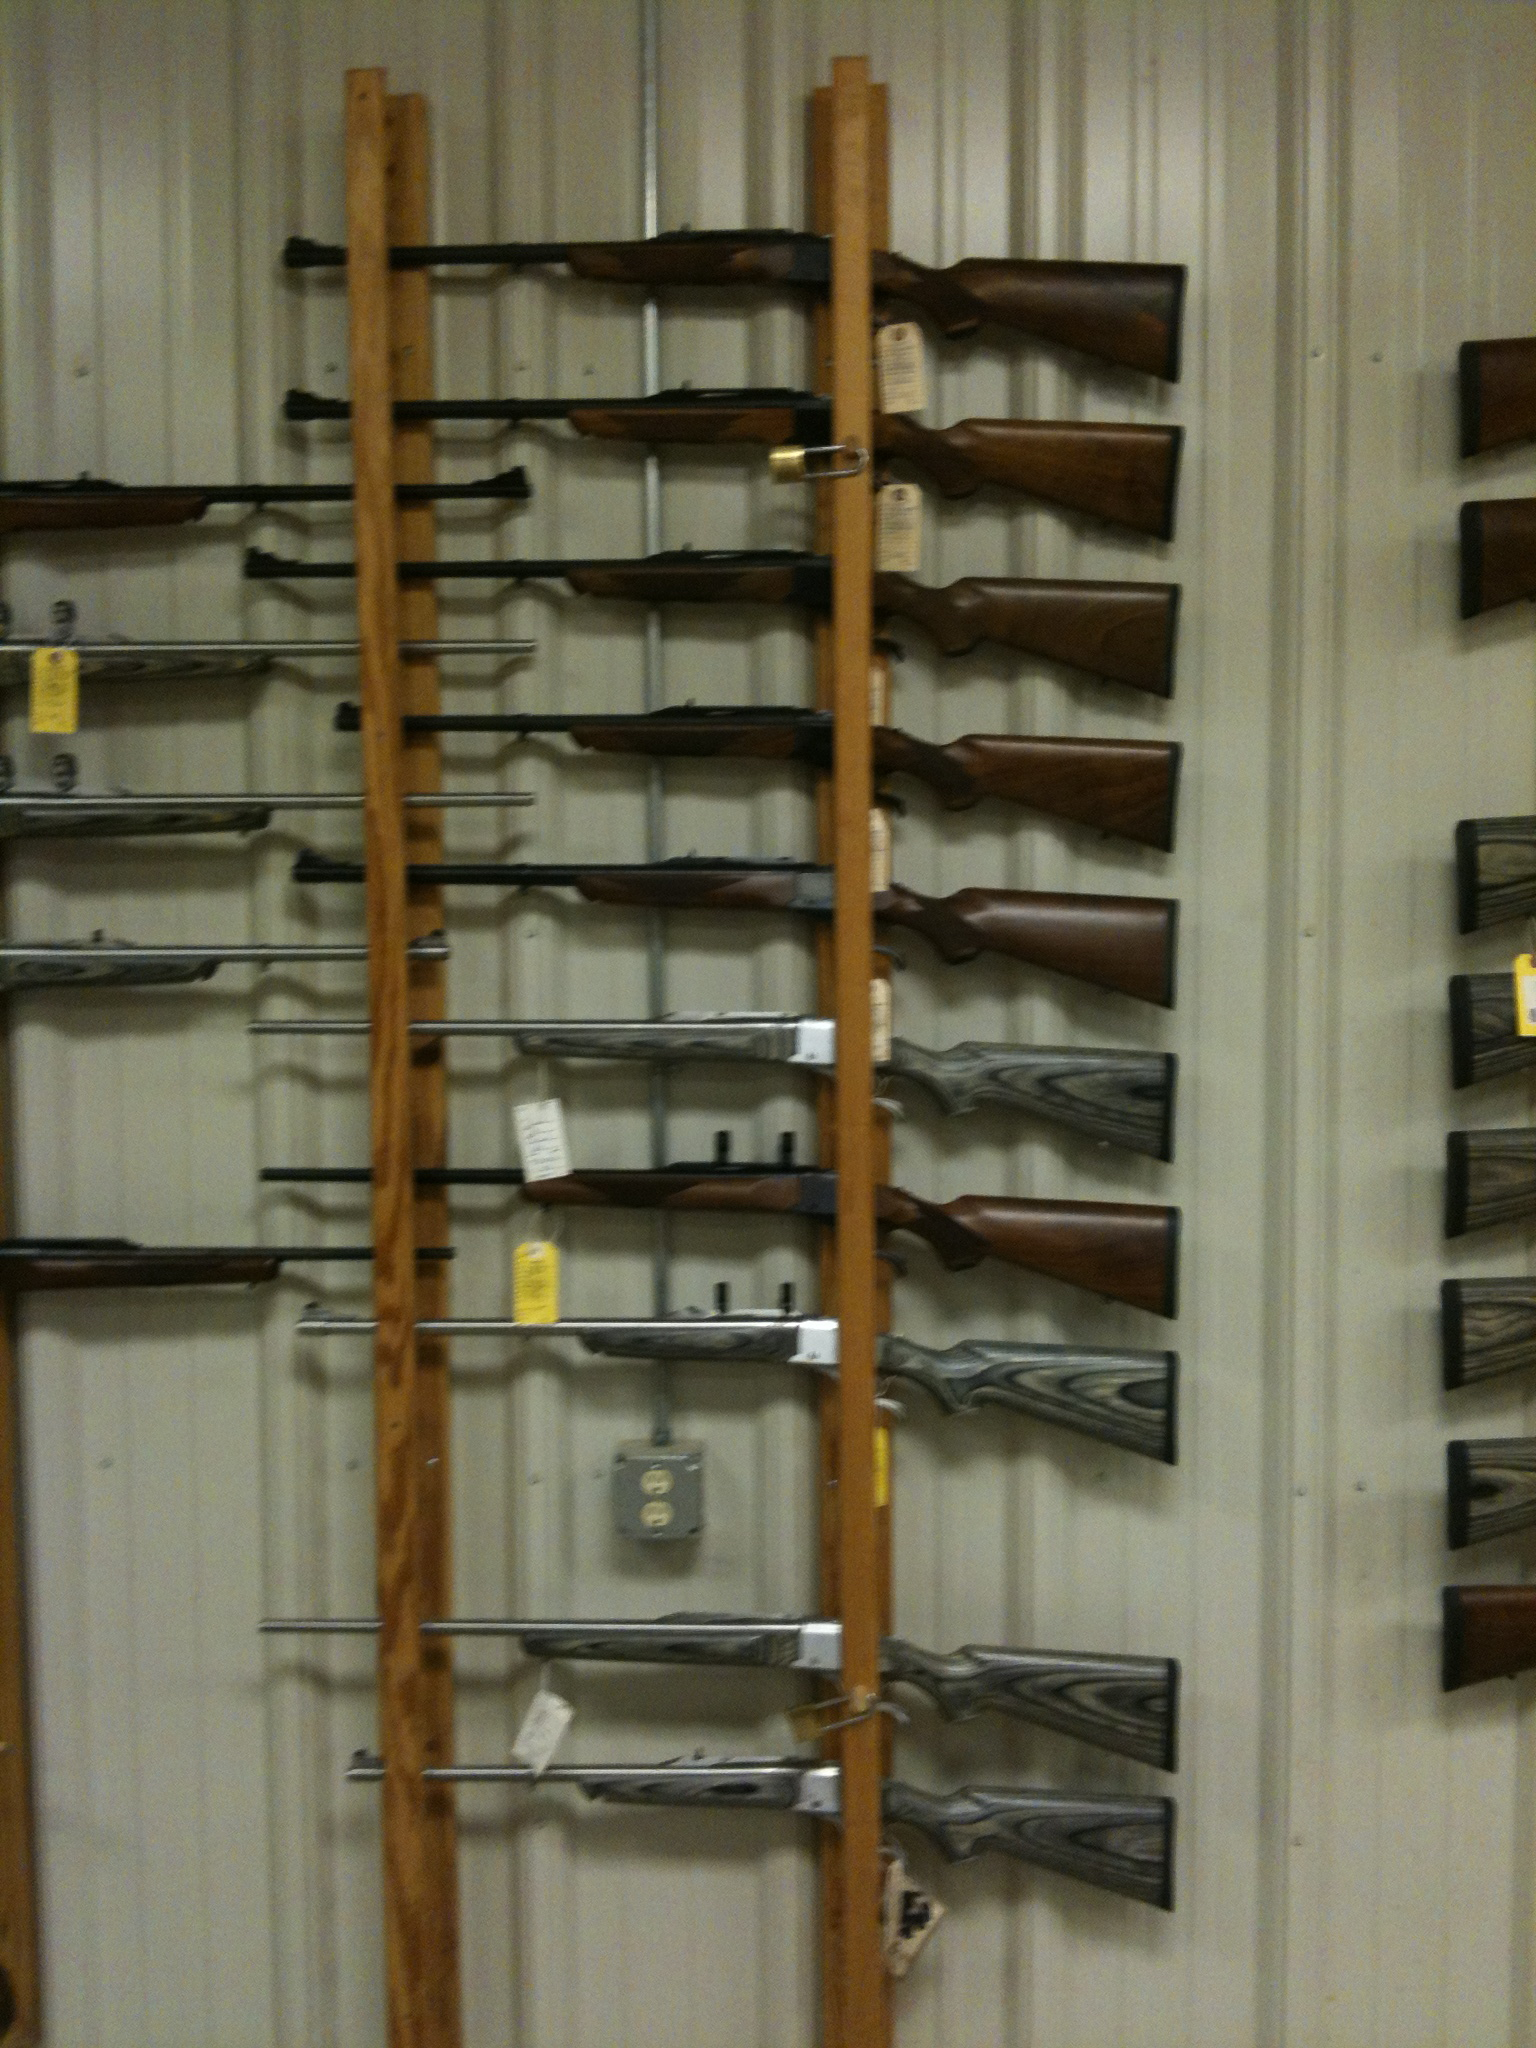 The Ruger No.1 single shot rifle section. Each rifle was a different caliber with the exception of some. Next to this wall were also some Dakota Arms single shot rifles. Where are the old Remington rolling blocks, Winchester Low Walls and High Walls? In the rare firearms section.